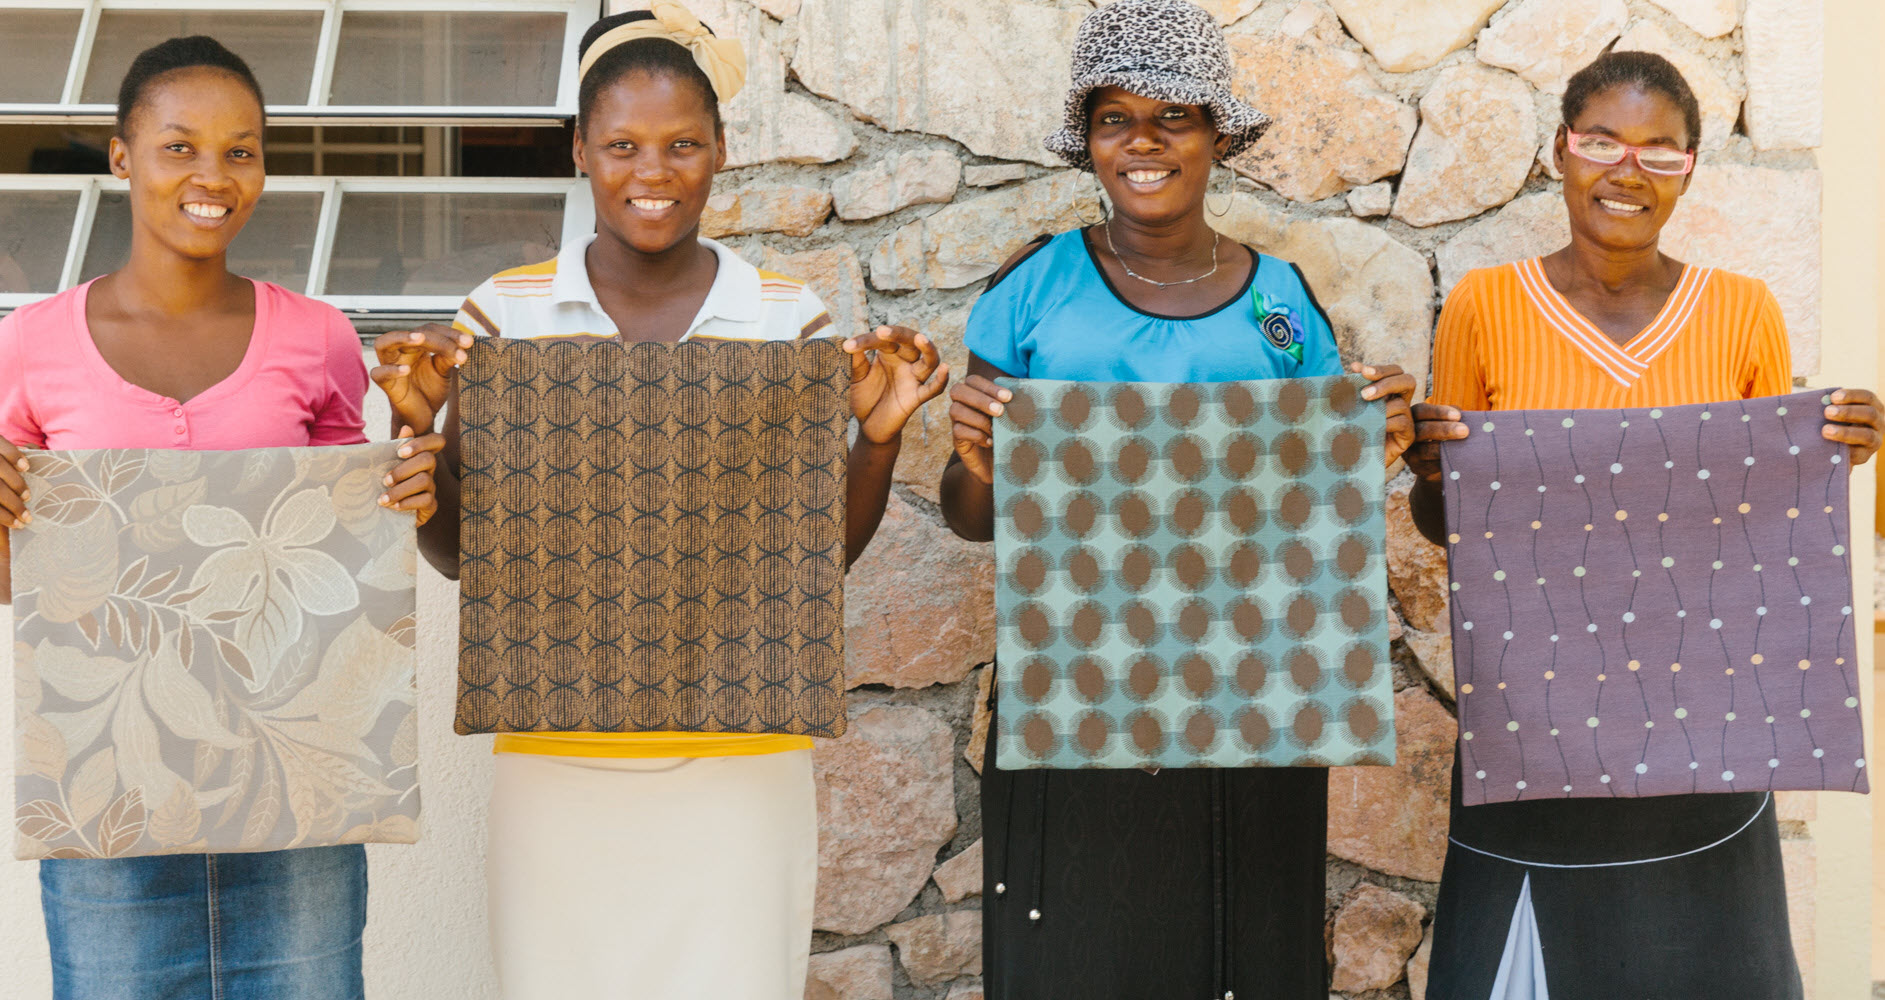 Herman Miller's textile scraps are diverted from landfills to instead fuel economic prosperity for struggling mothers in Port-au- Prince, Haiti. (Image © Herman Miller)